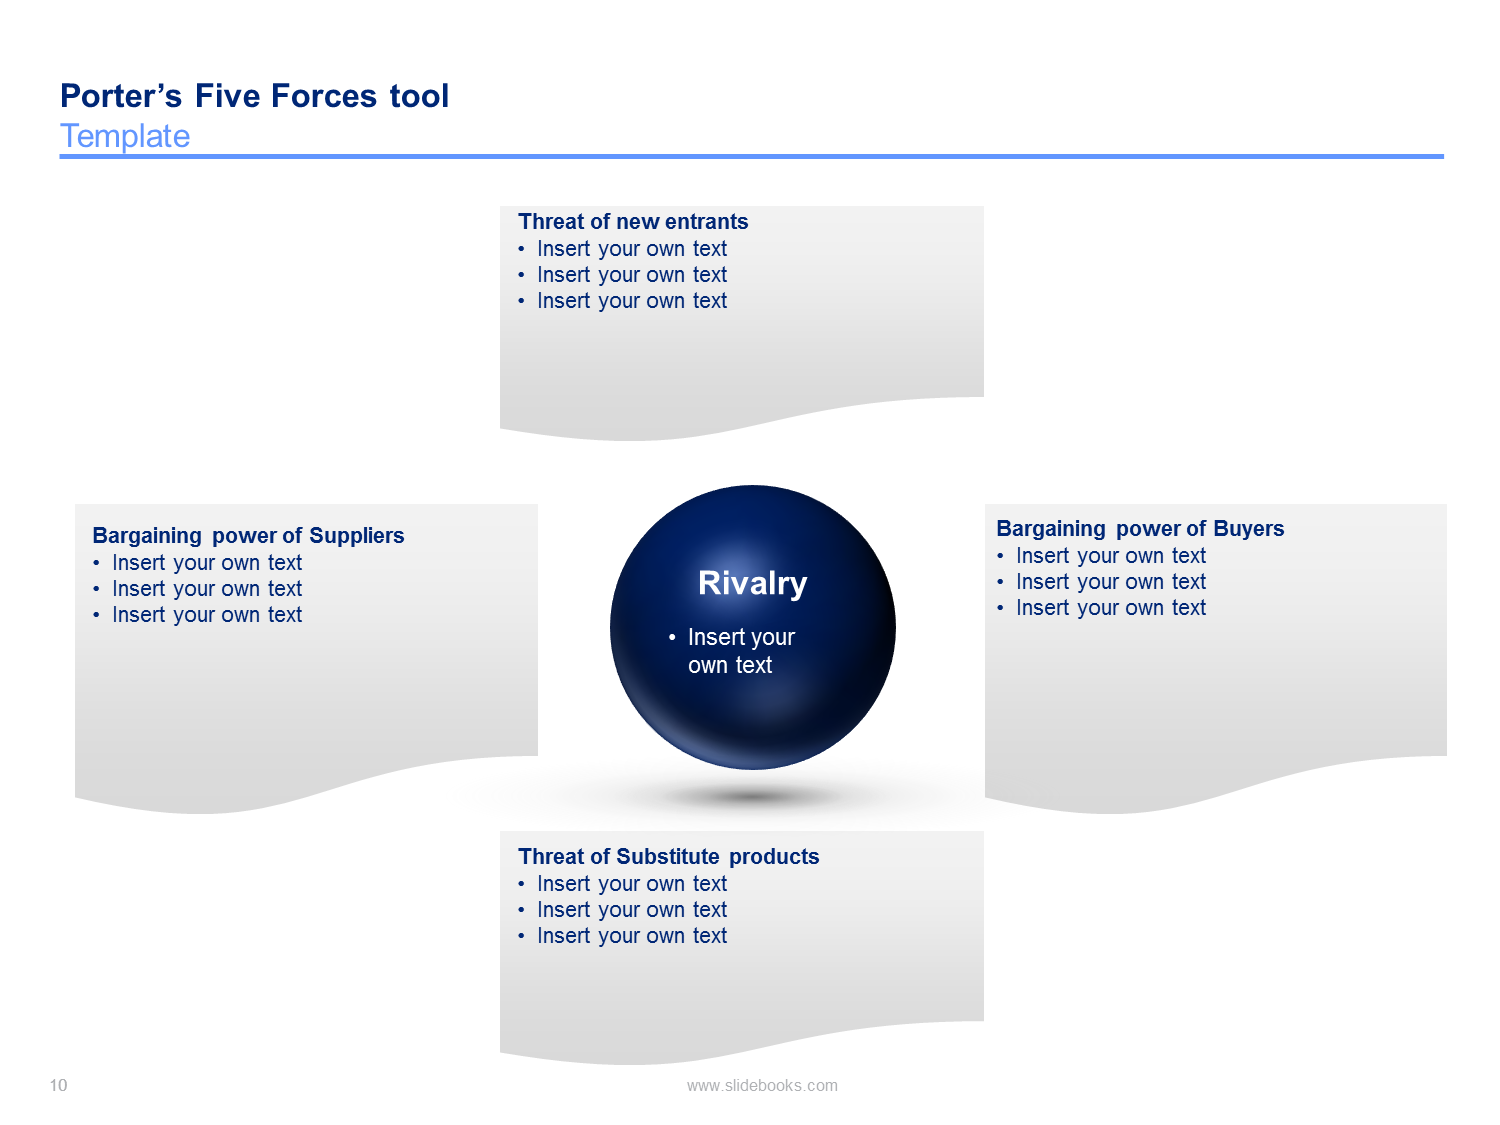 porter's five forces templates | students, Powerpoint templates